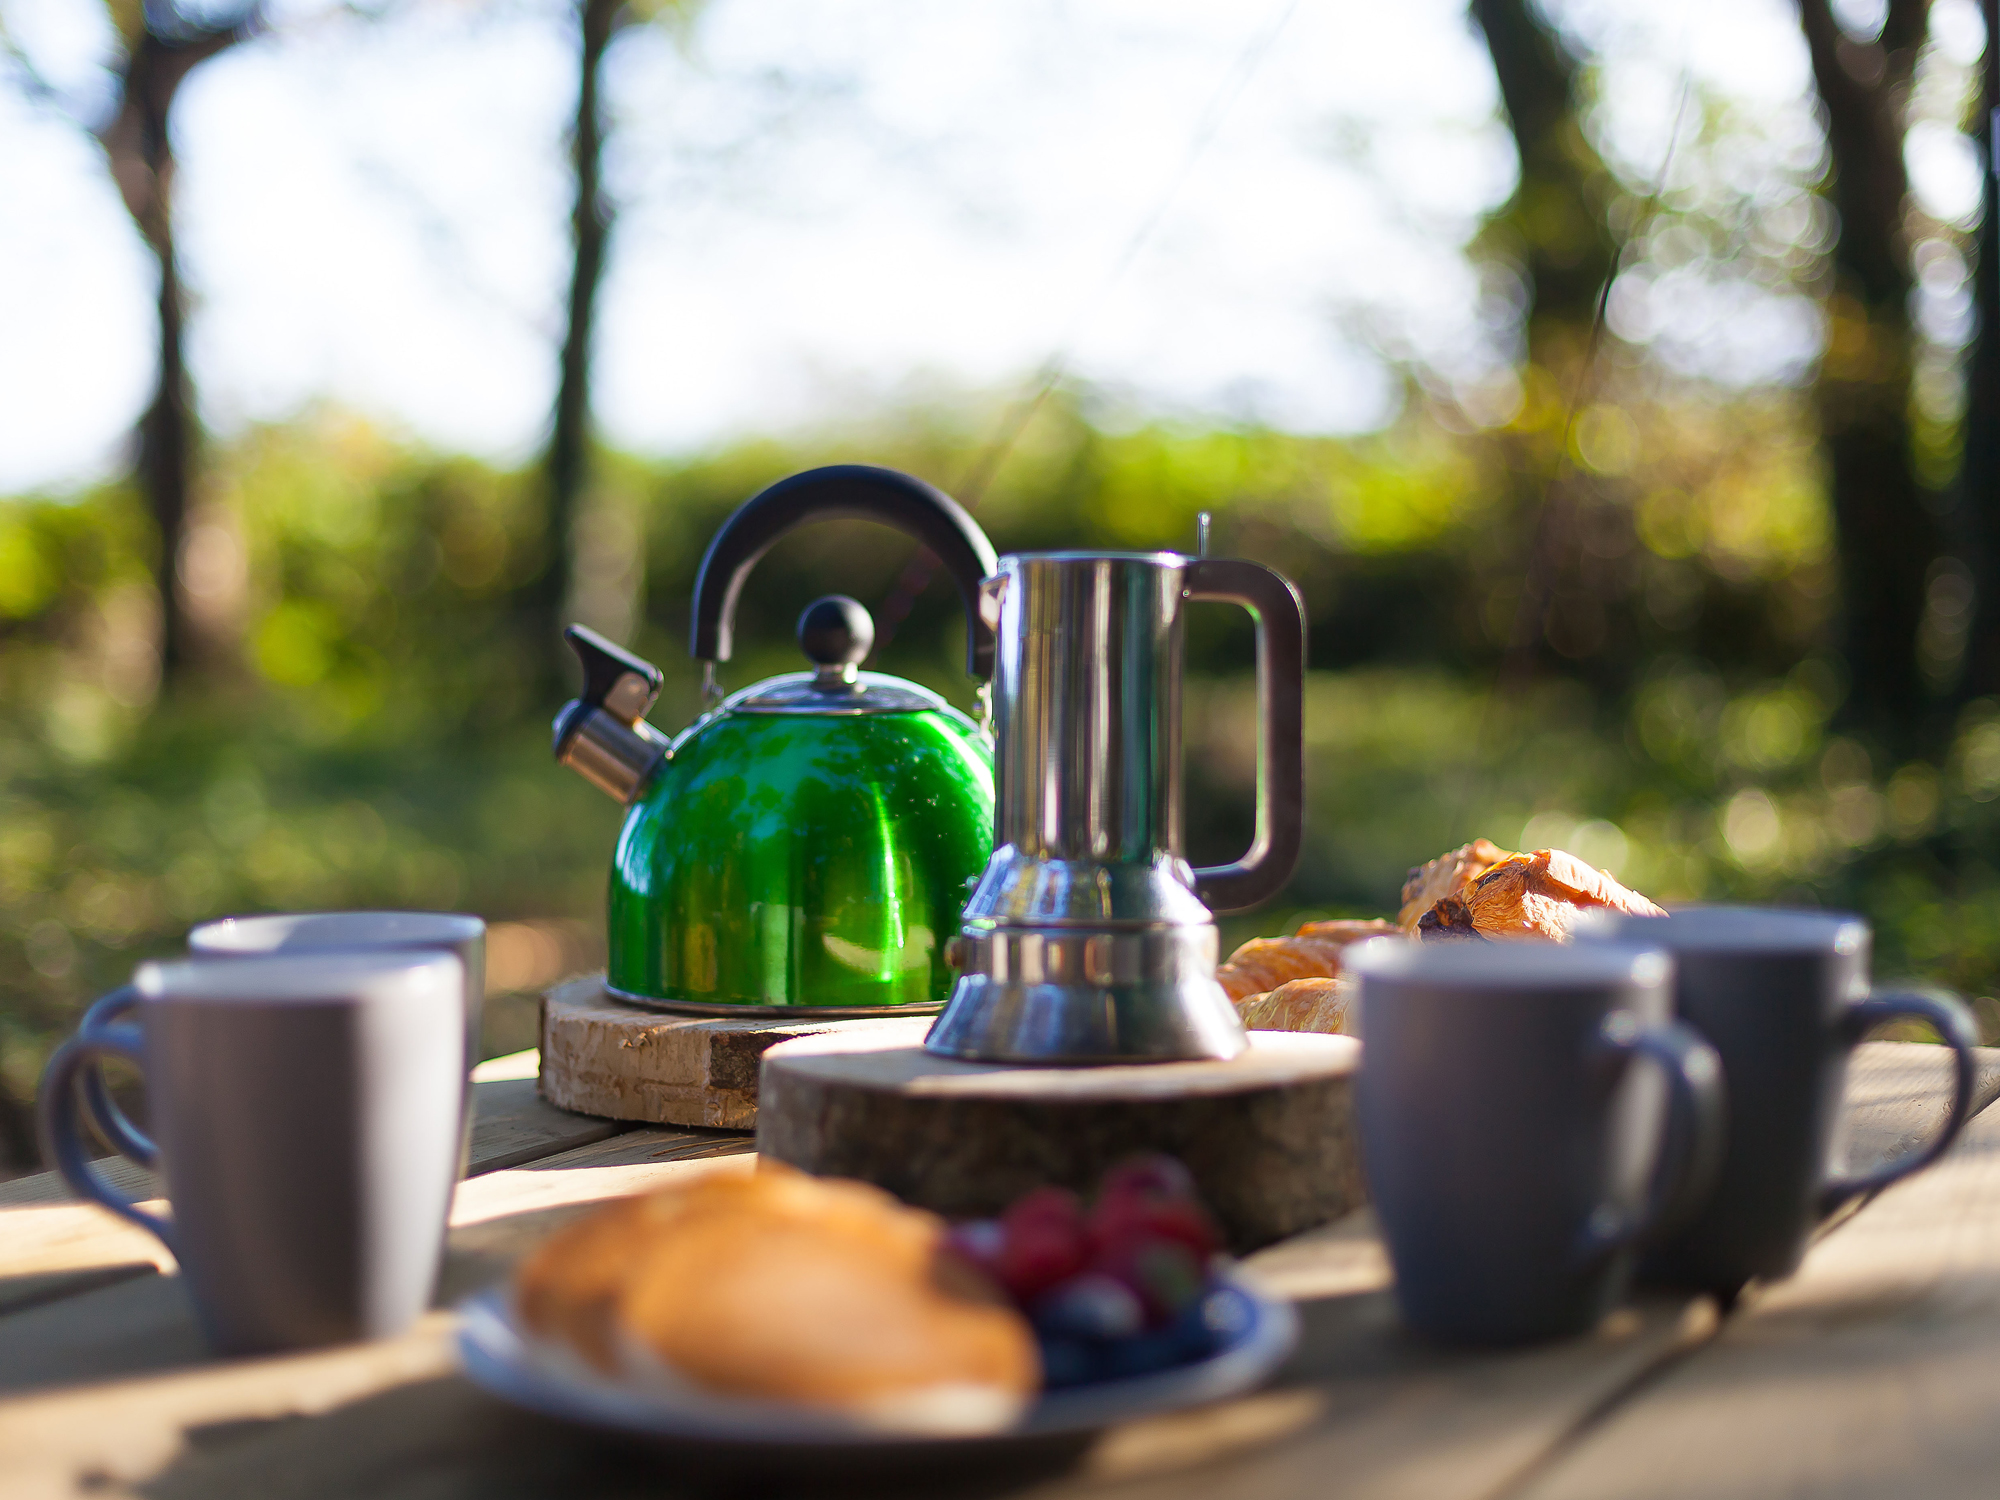 Breakfast table and kettle